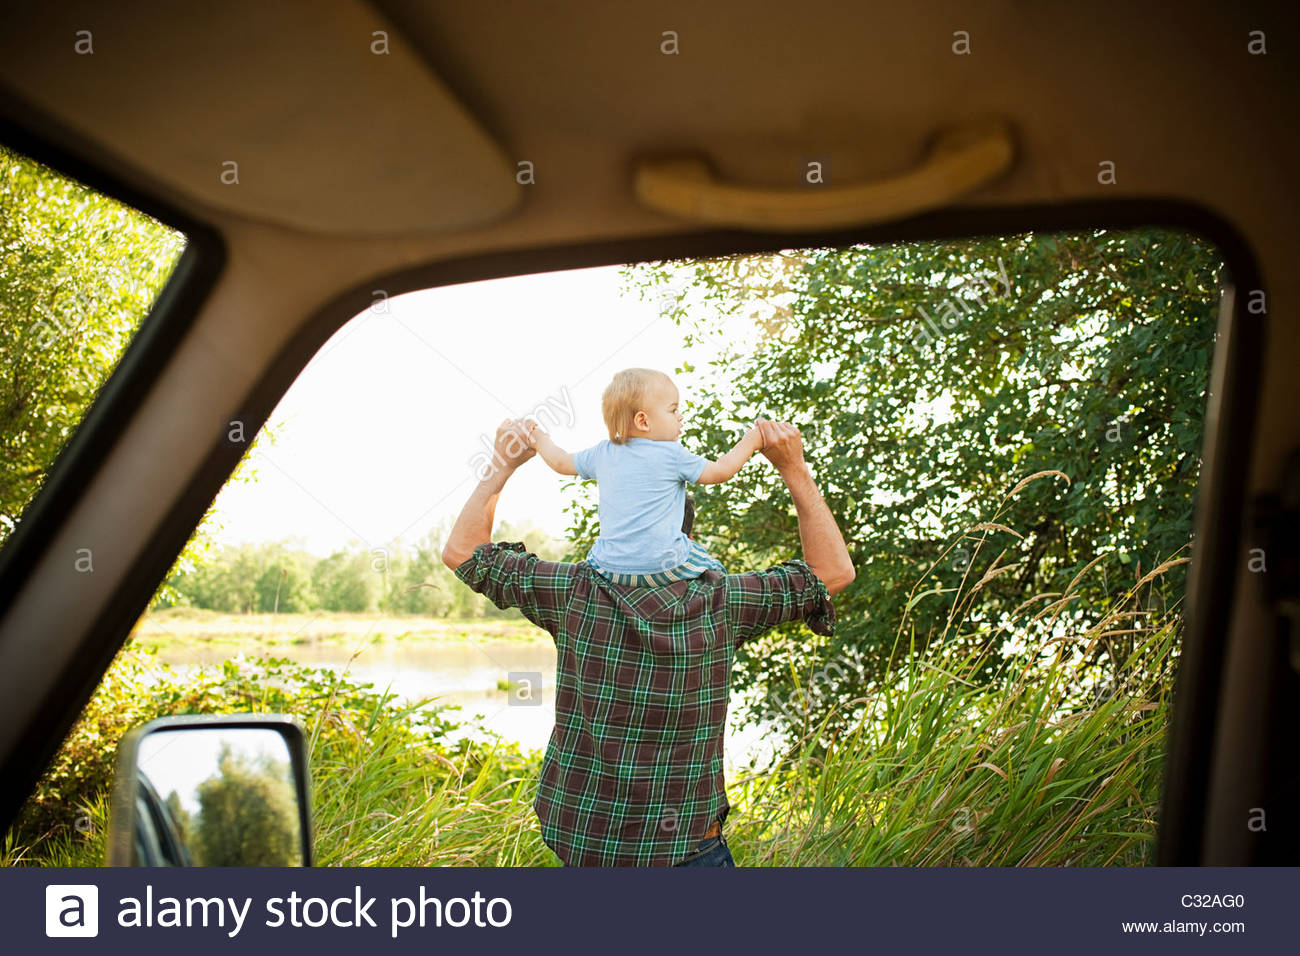 Father with son on shoulders, viewed from a car - Stock Image